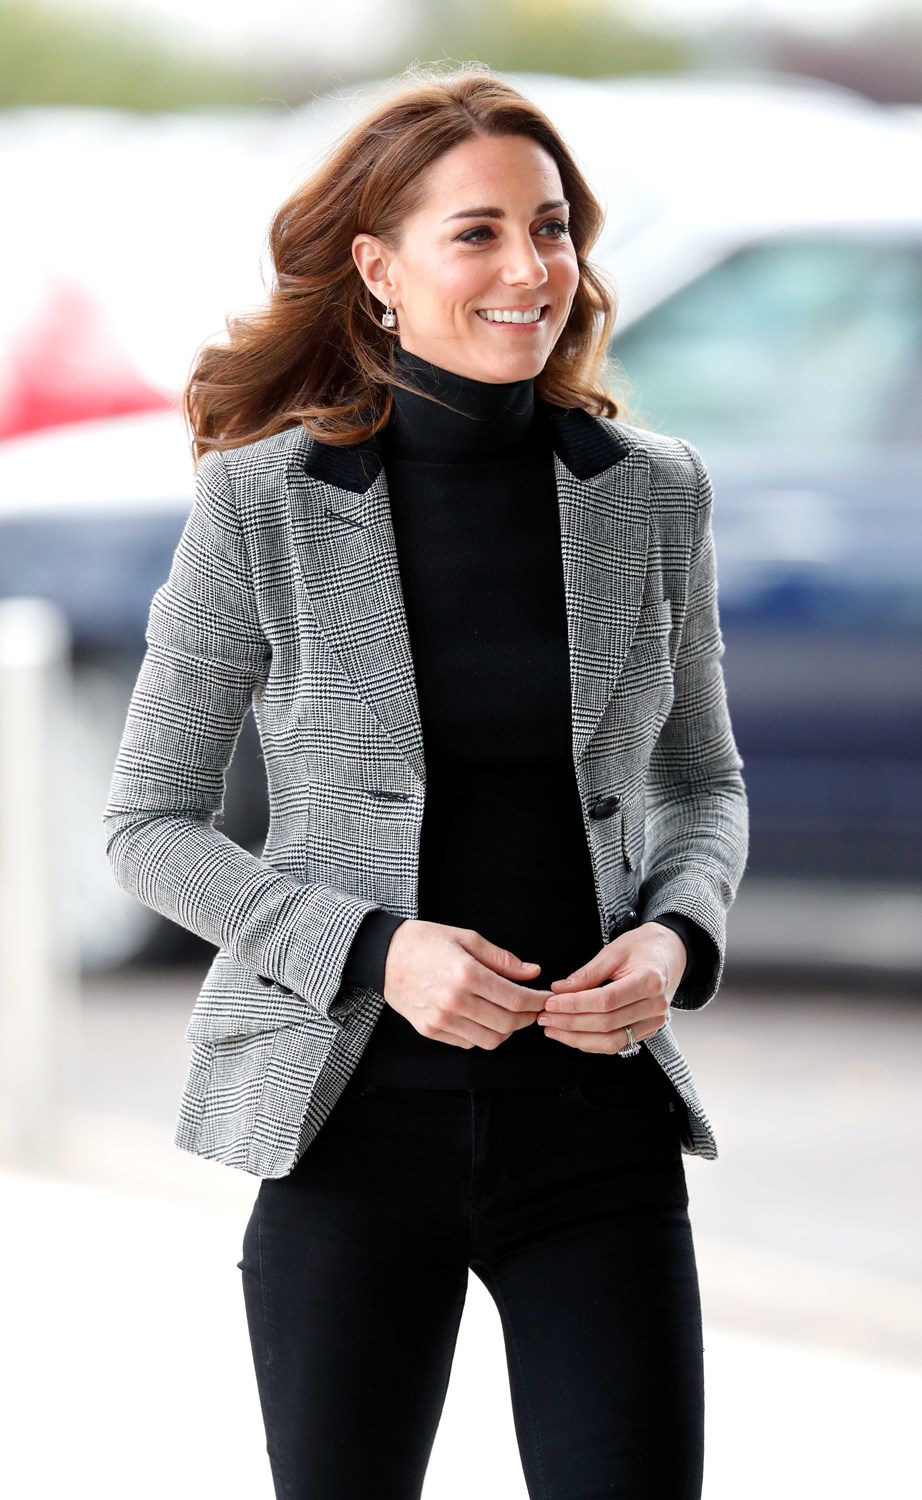 Duchess Kate uses dietitian Louise Parker's seven-step program to stay in tip-top shape!